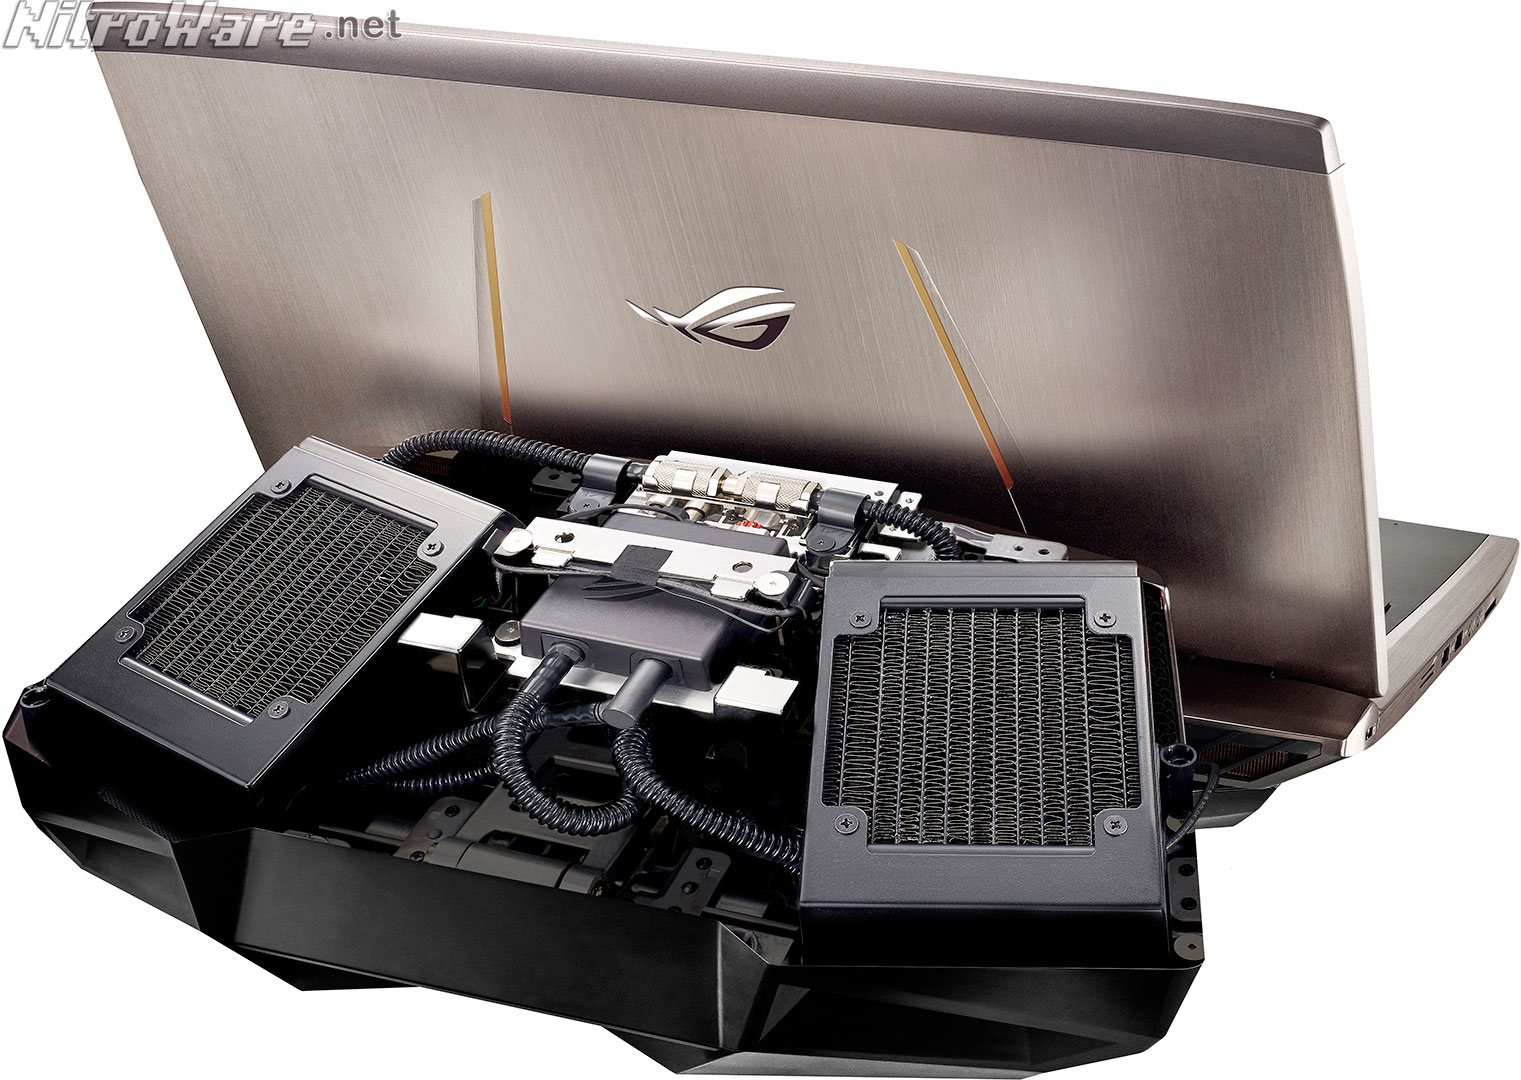 Computer Cooling System : Nitroware asus rog gx liquid cooled gaming laptop